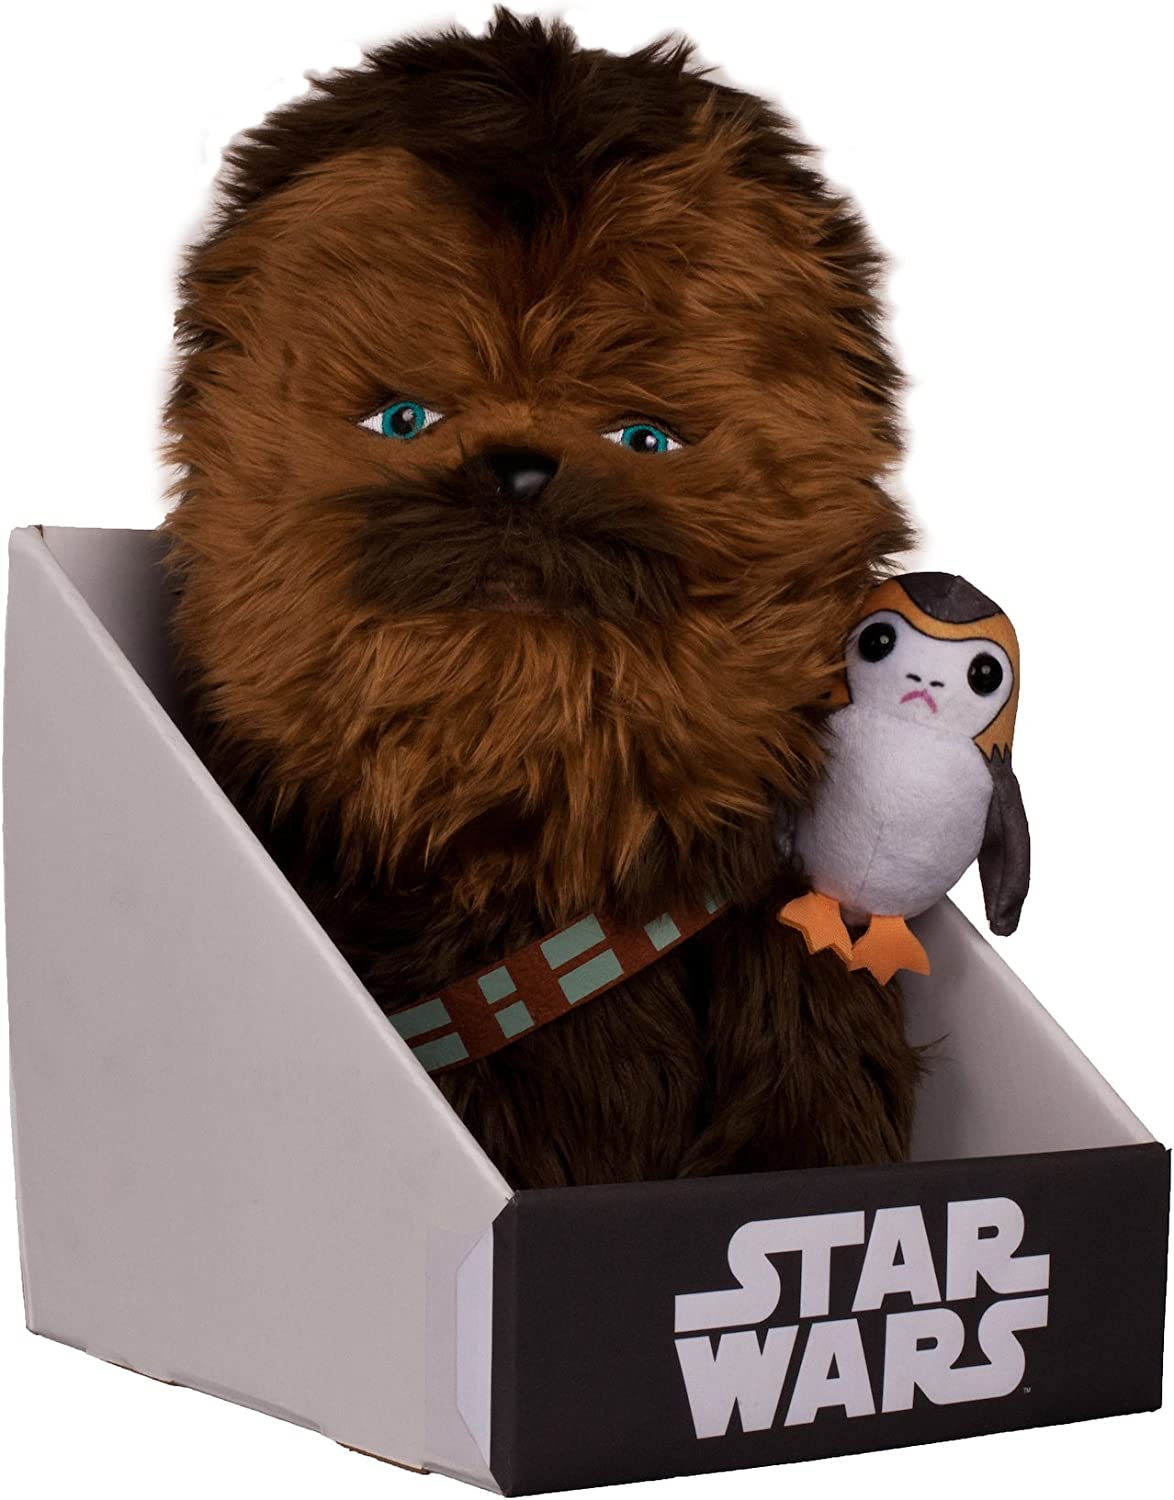 Comic Images Large (12 ) Super-Deformed Plush Star Wars Episode VIII Chewbacca with PORG Action Figure